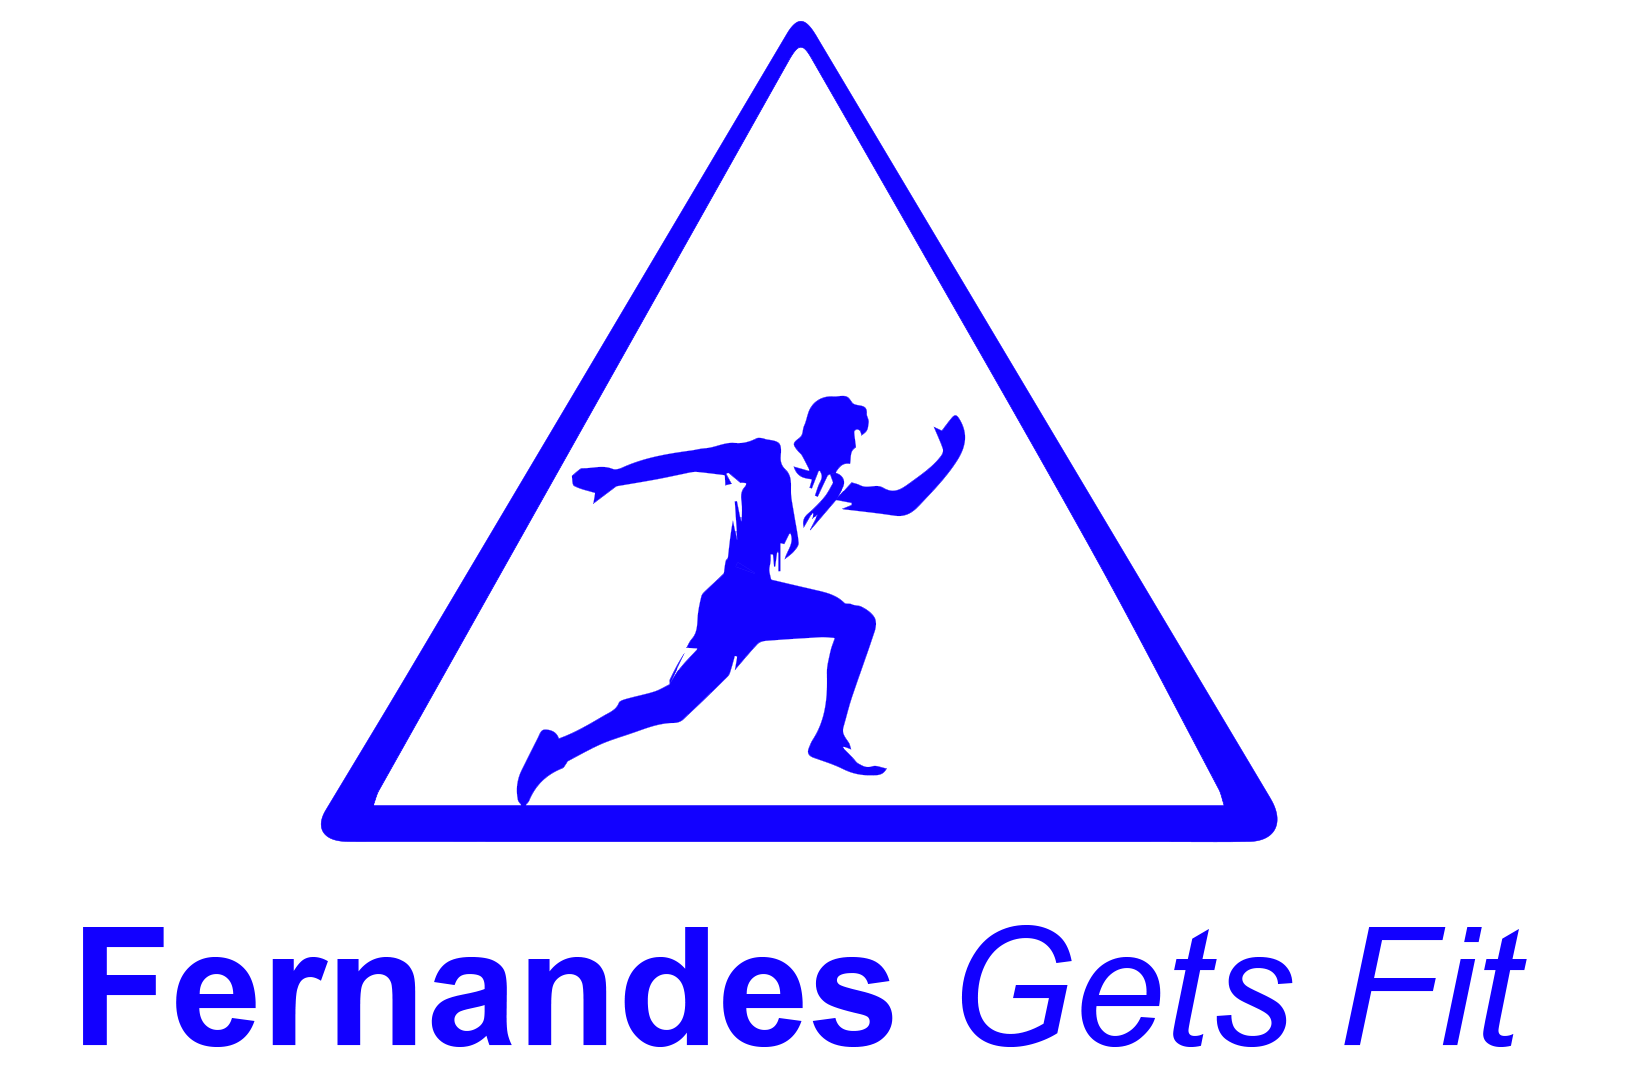 Logo Fernandes Gets Fit